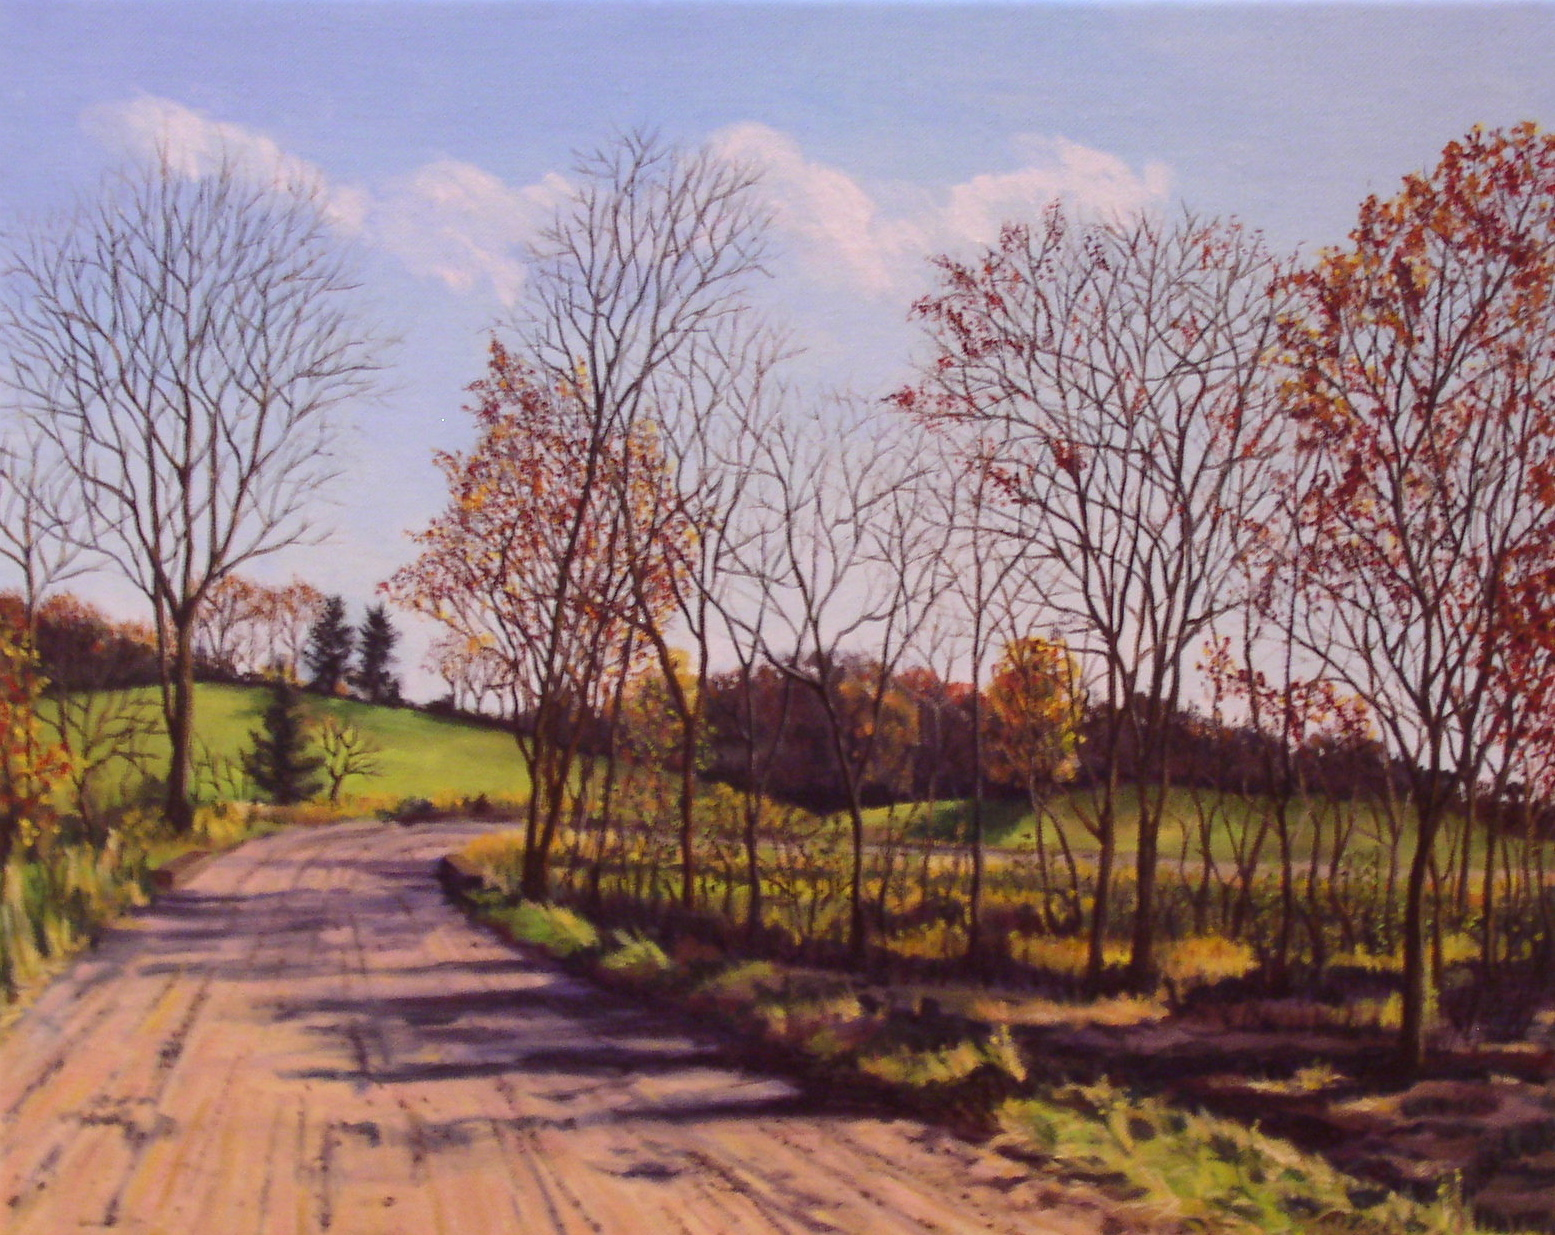 oil painting of dirt road in the fall with bare trees leading around a bend